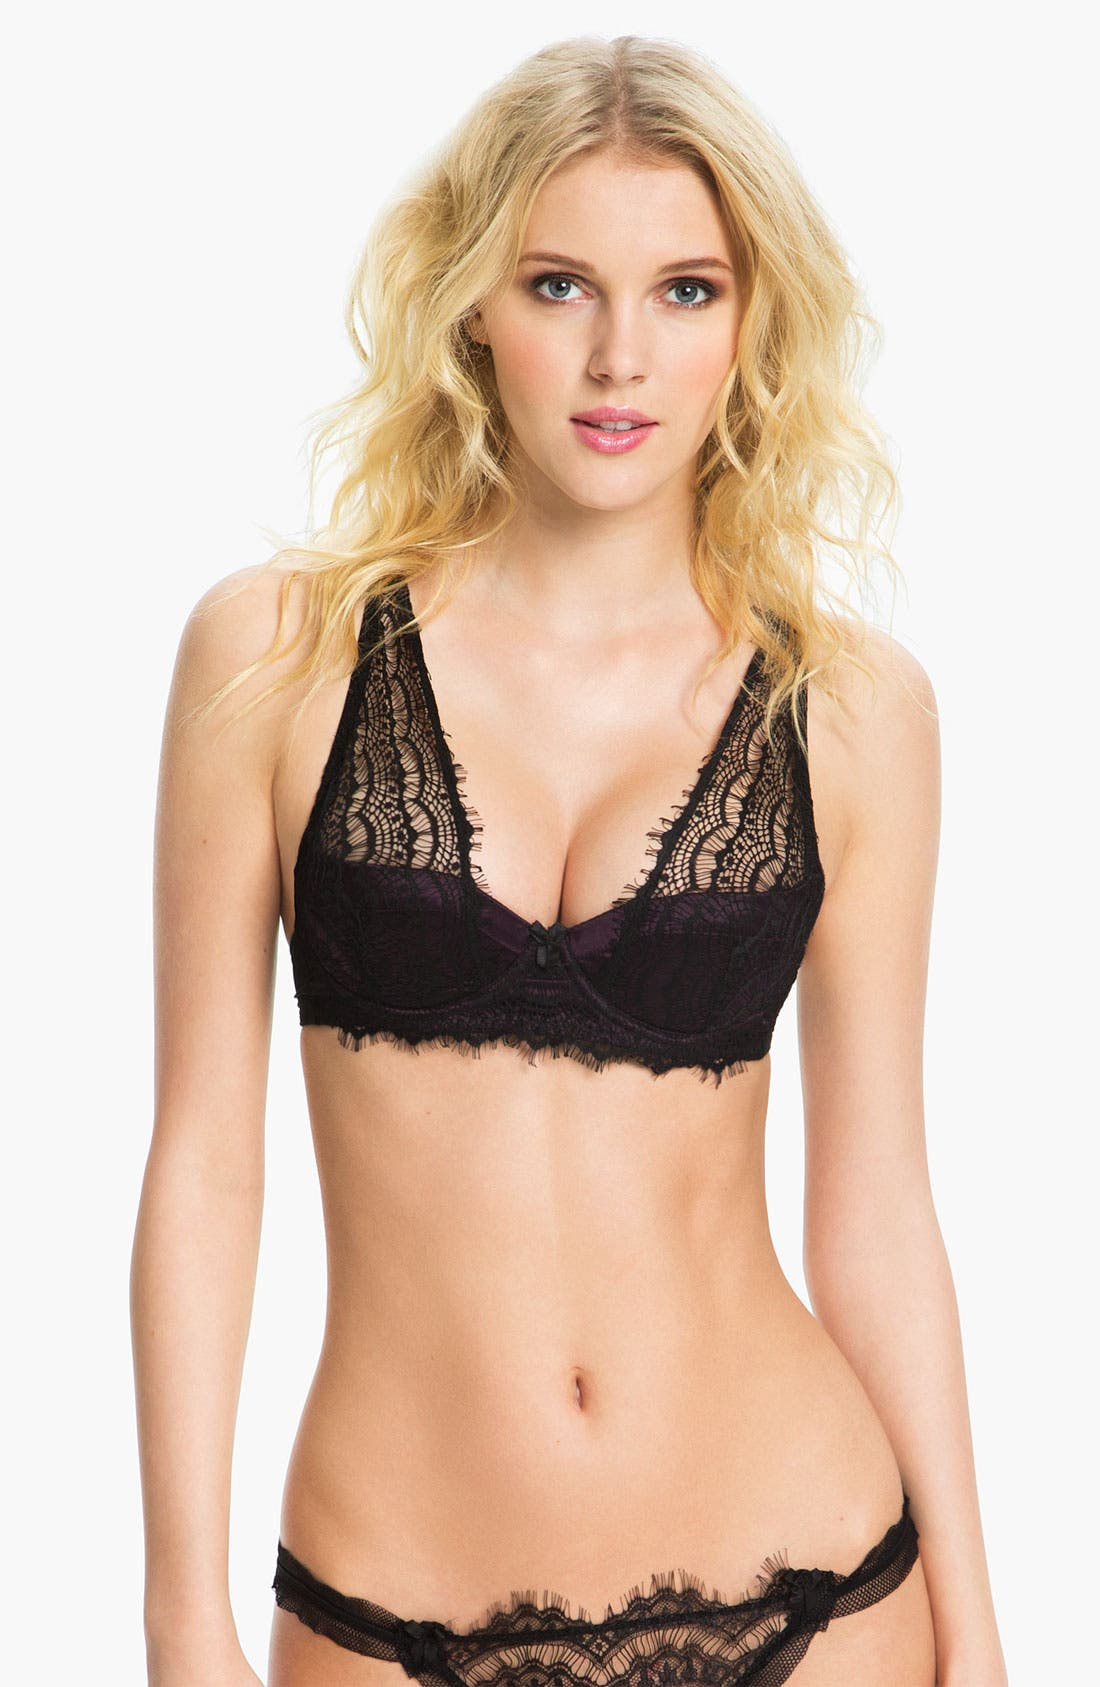 Main Image - Mimi Holliday 'Bisou Bisou Berry' Padded Underwire Shoulder Bra